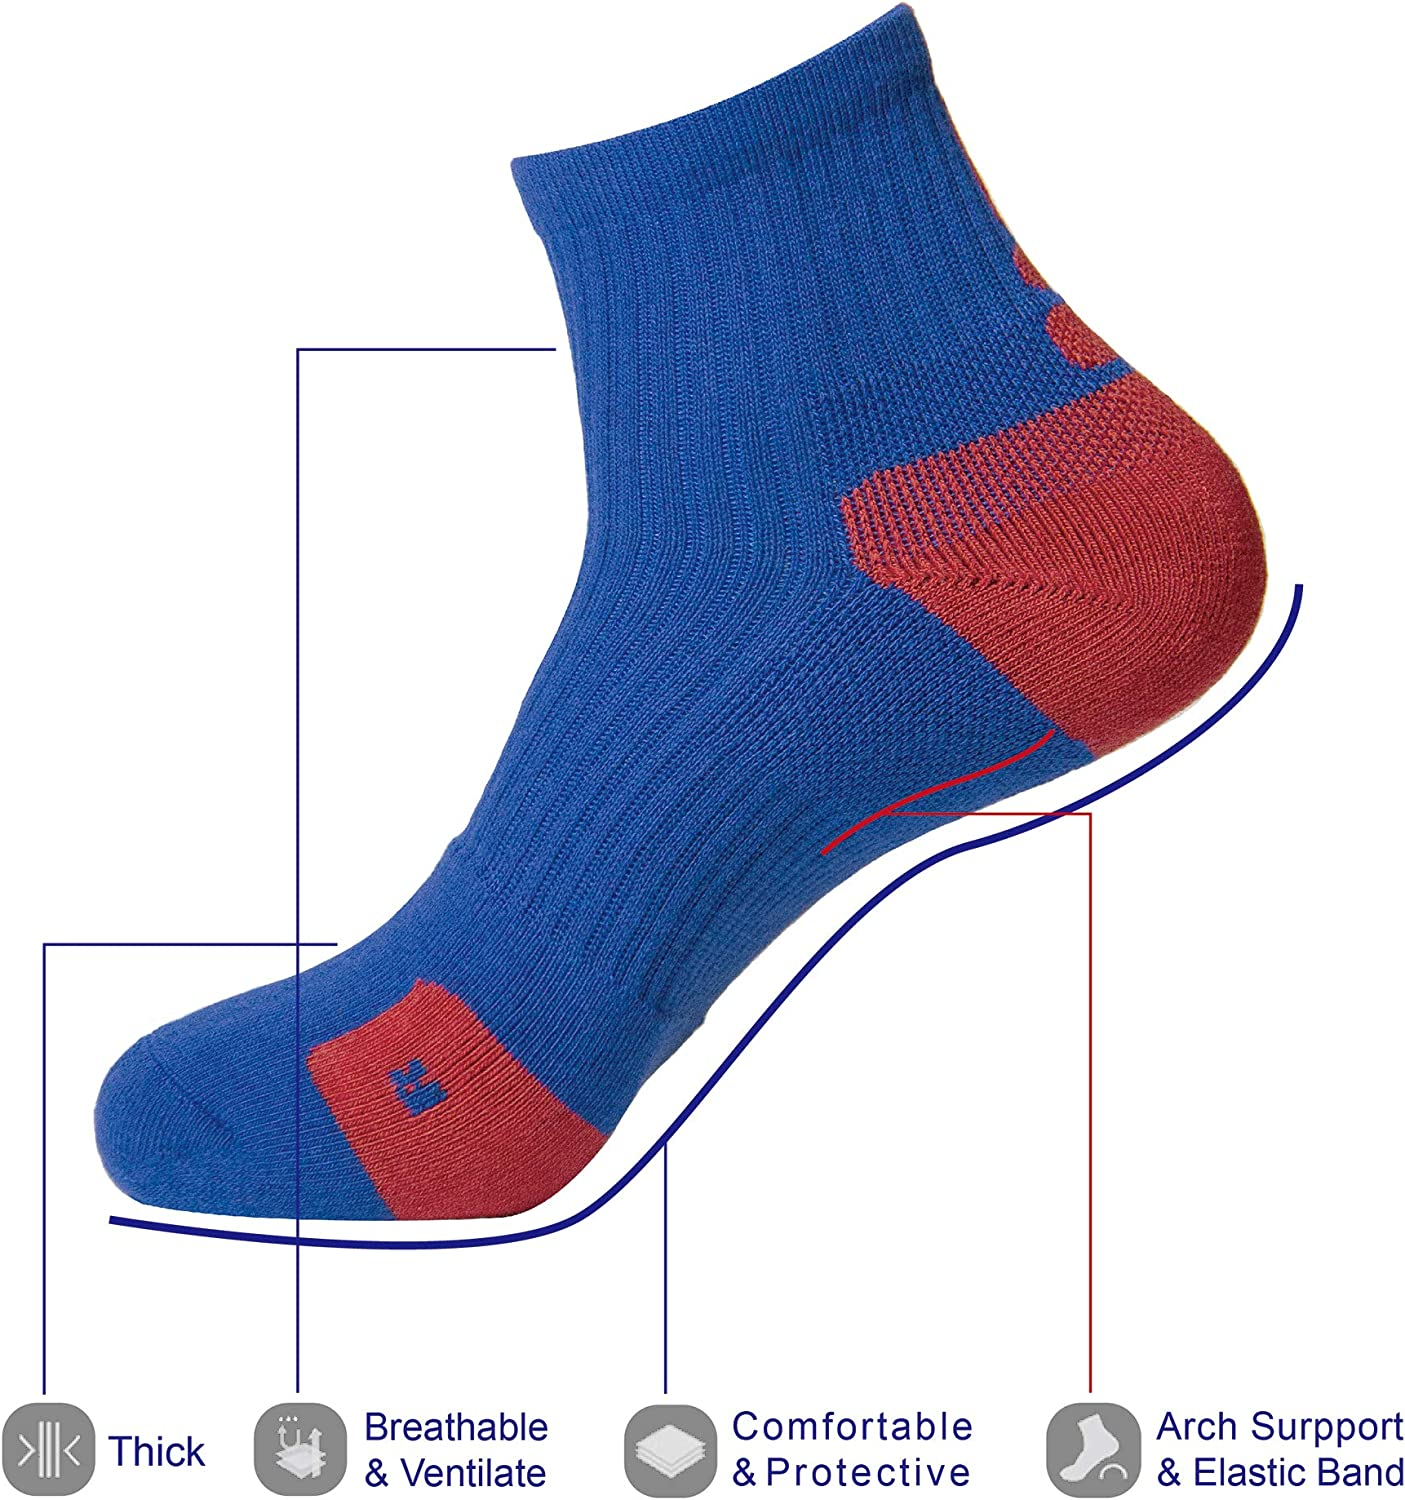 2 Packs, white-blue, blue-red Men/'s Outdoor Socks Elastic Sports Cushioned Athletic Short Basketball Socks with Compression